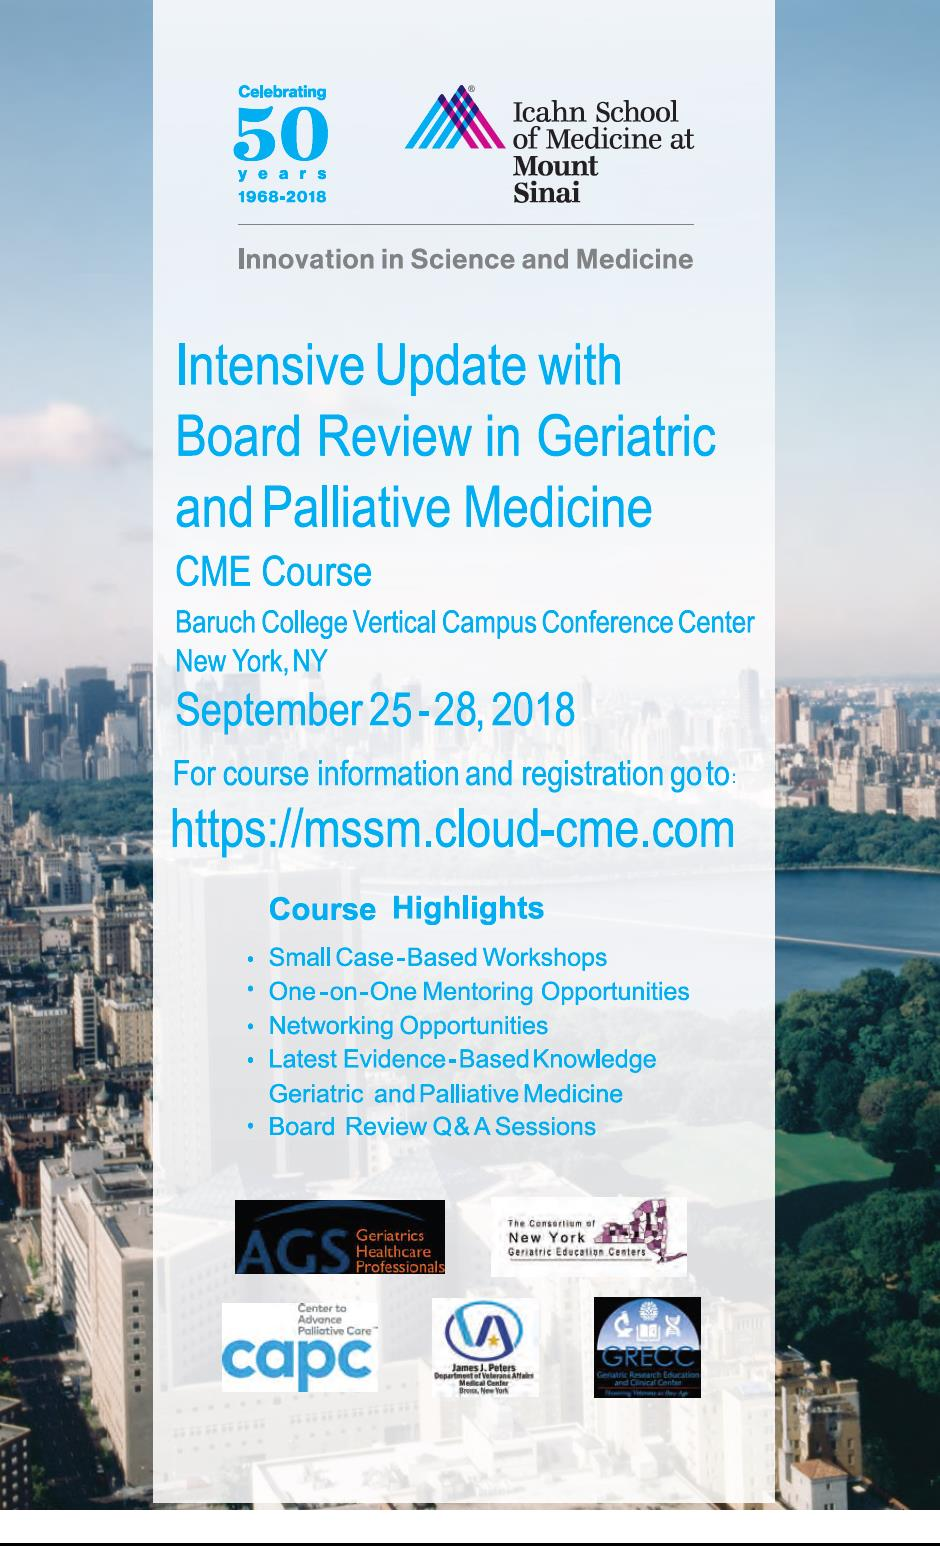 2018 Intensive Update with Board Review in Geriatric and Palliative Medicine Banner